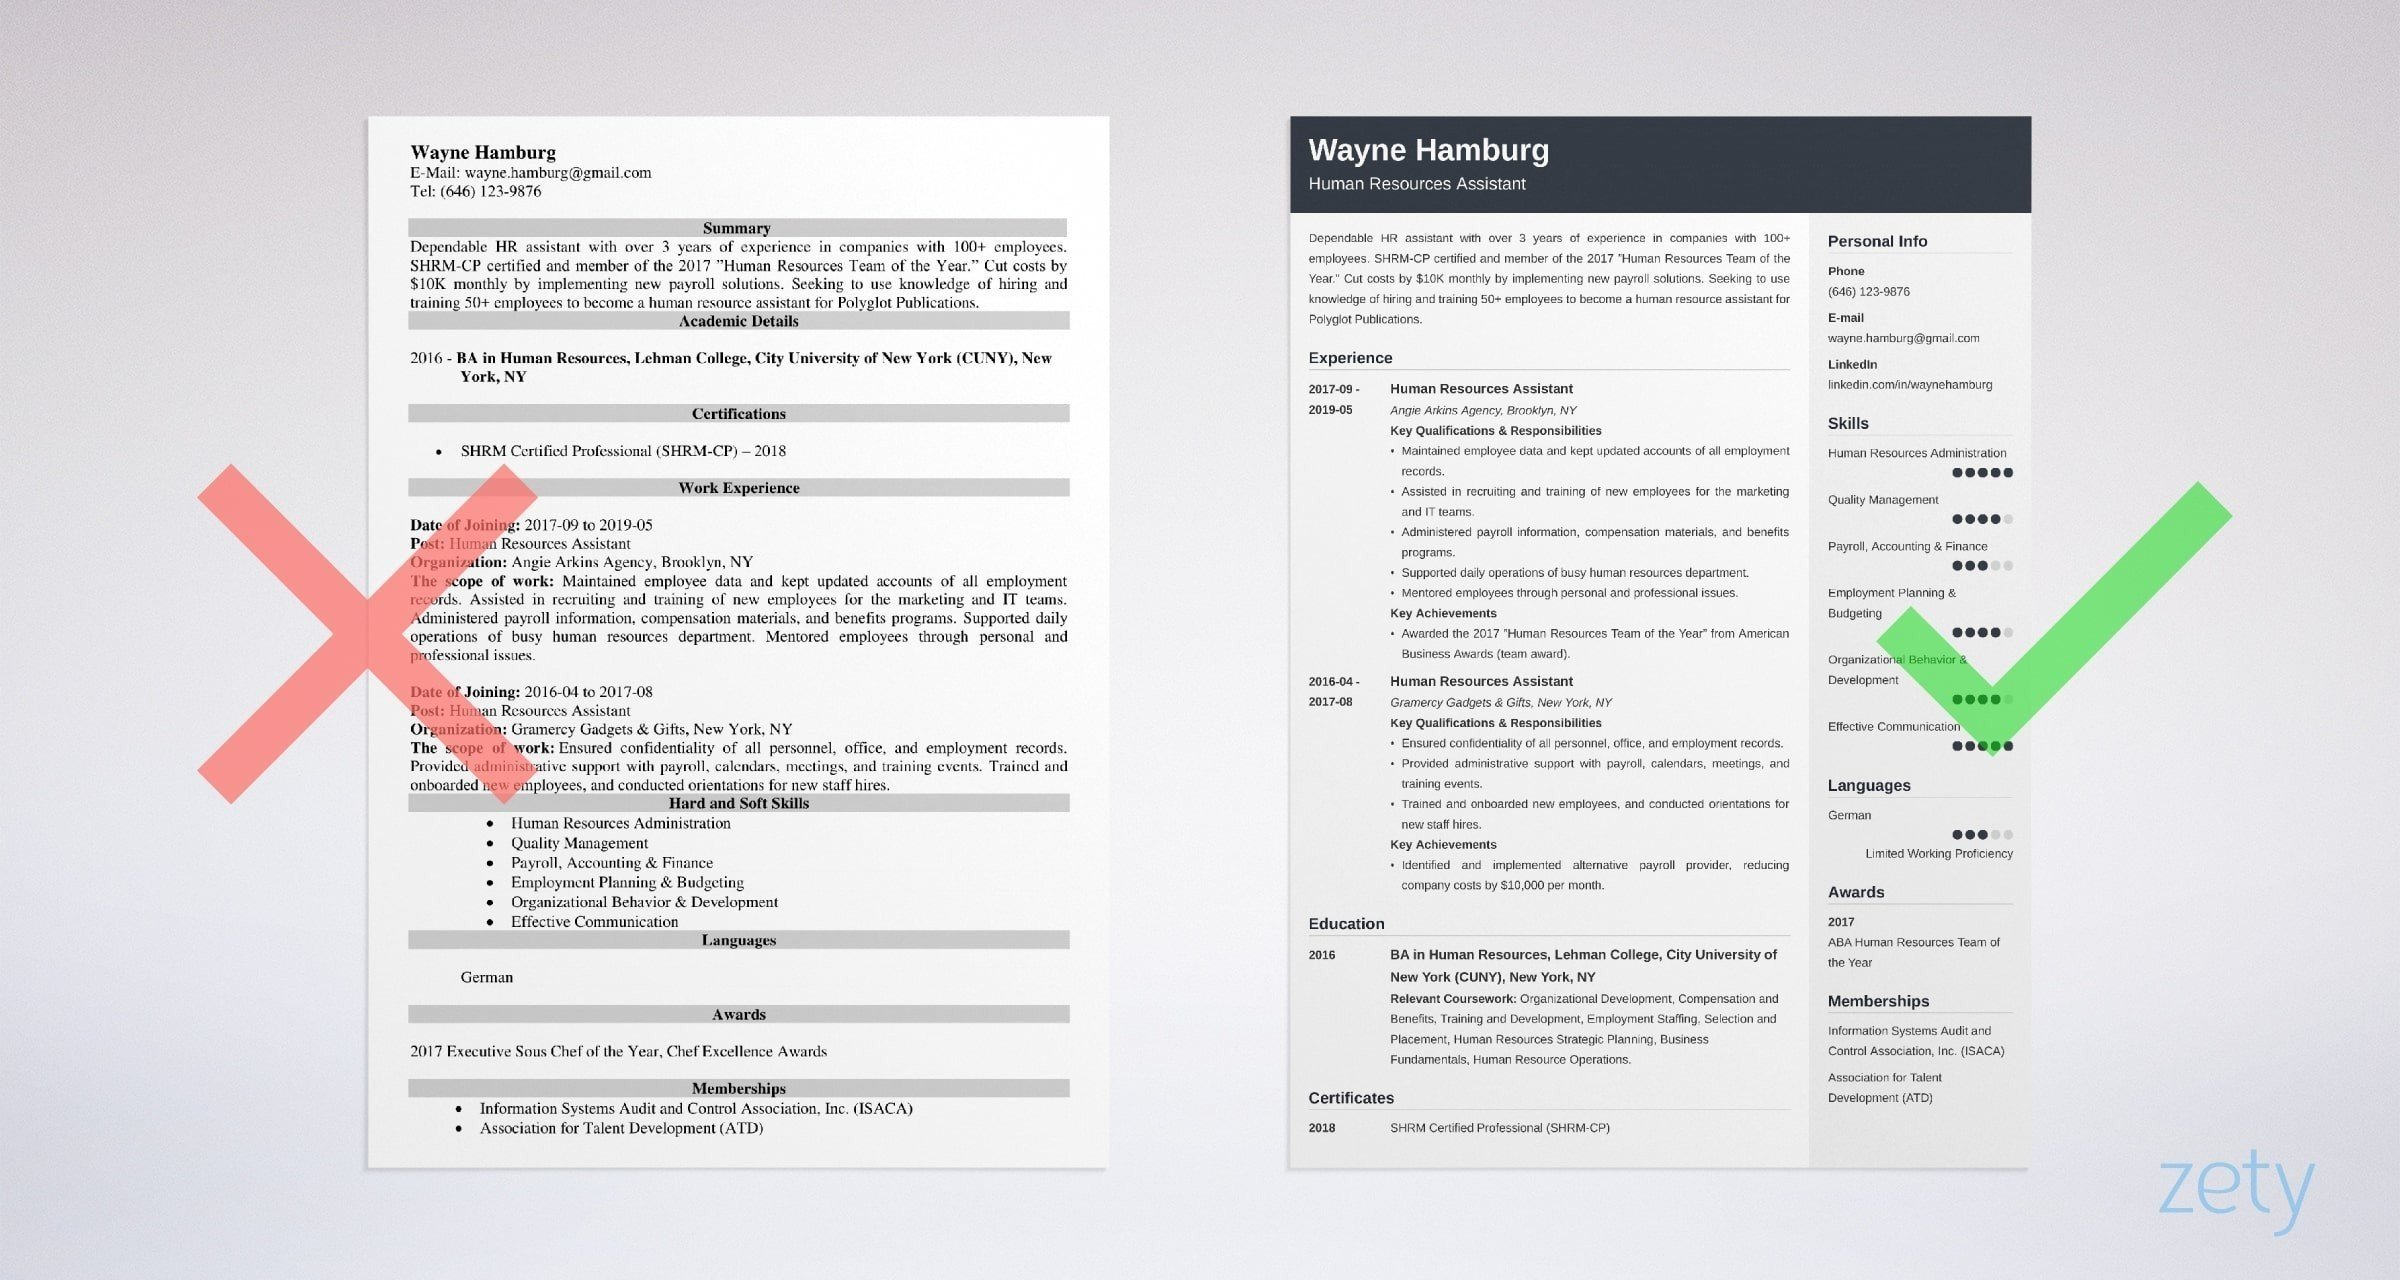 Learn more about how to recruit and train talented employees. Human Resources Hr Assistant Resume Sample Skills